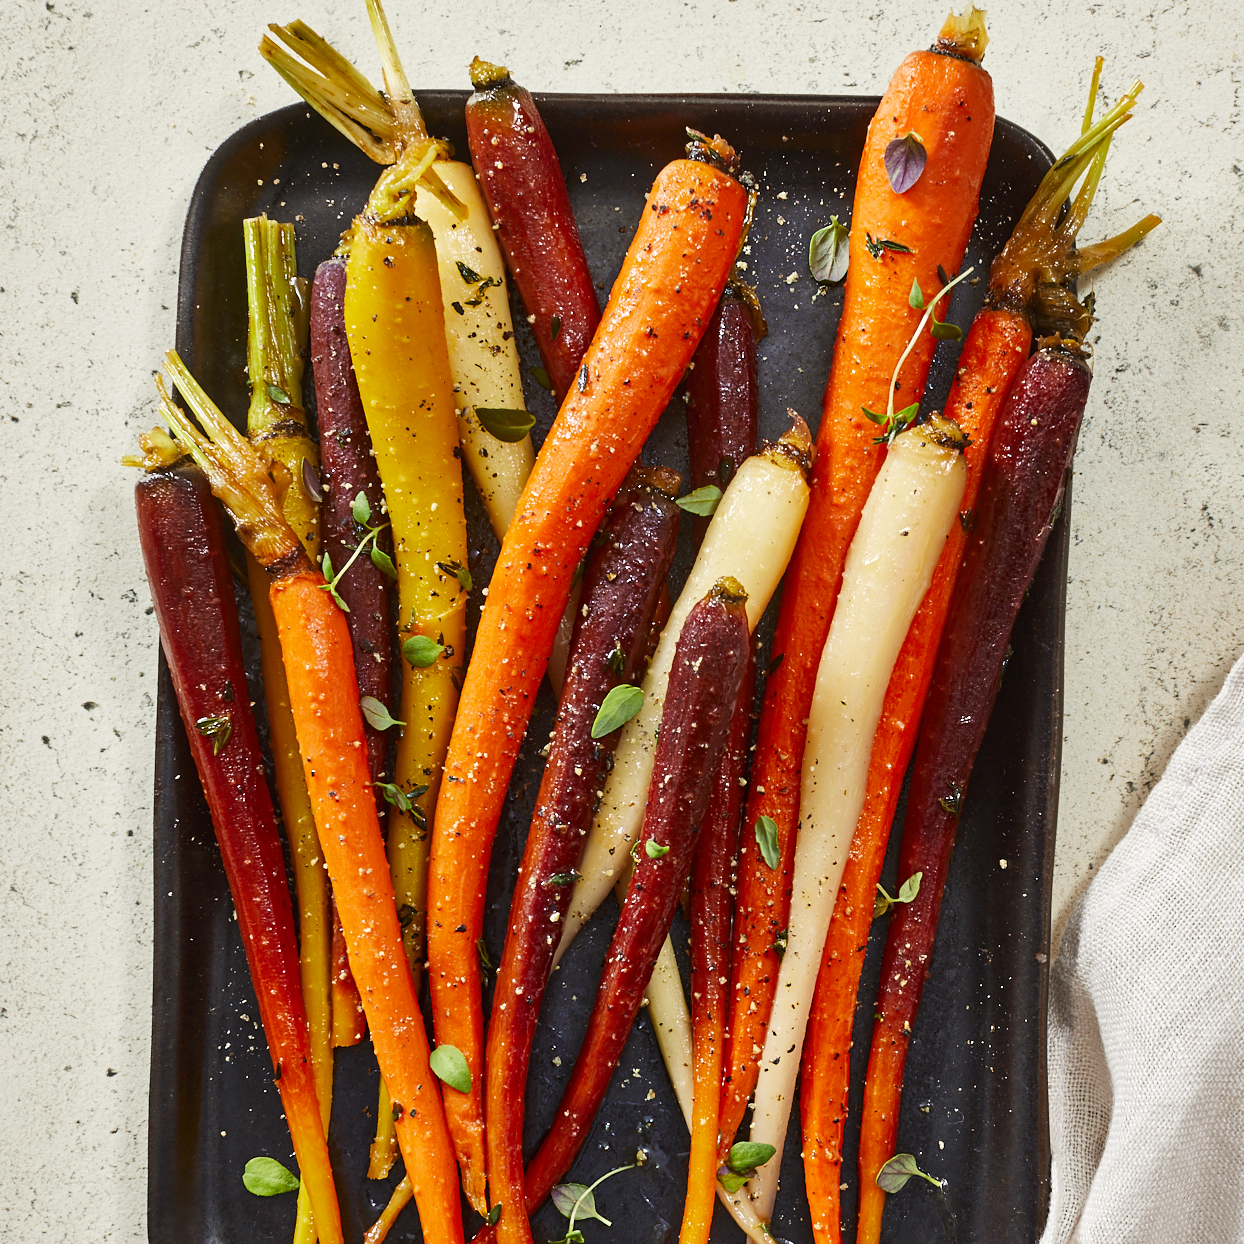 Bright and fresh, these candied carrots have just a hint of sweetness from the honey and citrus. This one-pan dish is quick and easy to make, but also has such a pretty presentation that it works both as an entertaining-worthy or weeknight side dish. Look for carrots that are similar in size so they cook evenly.